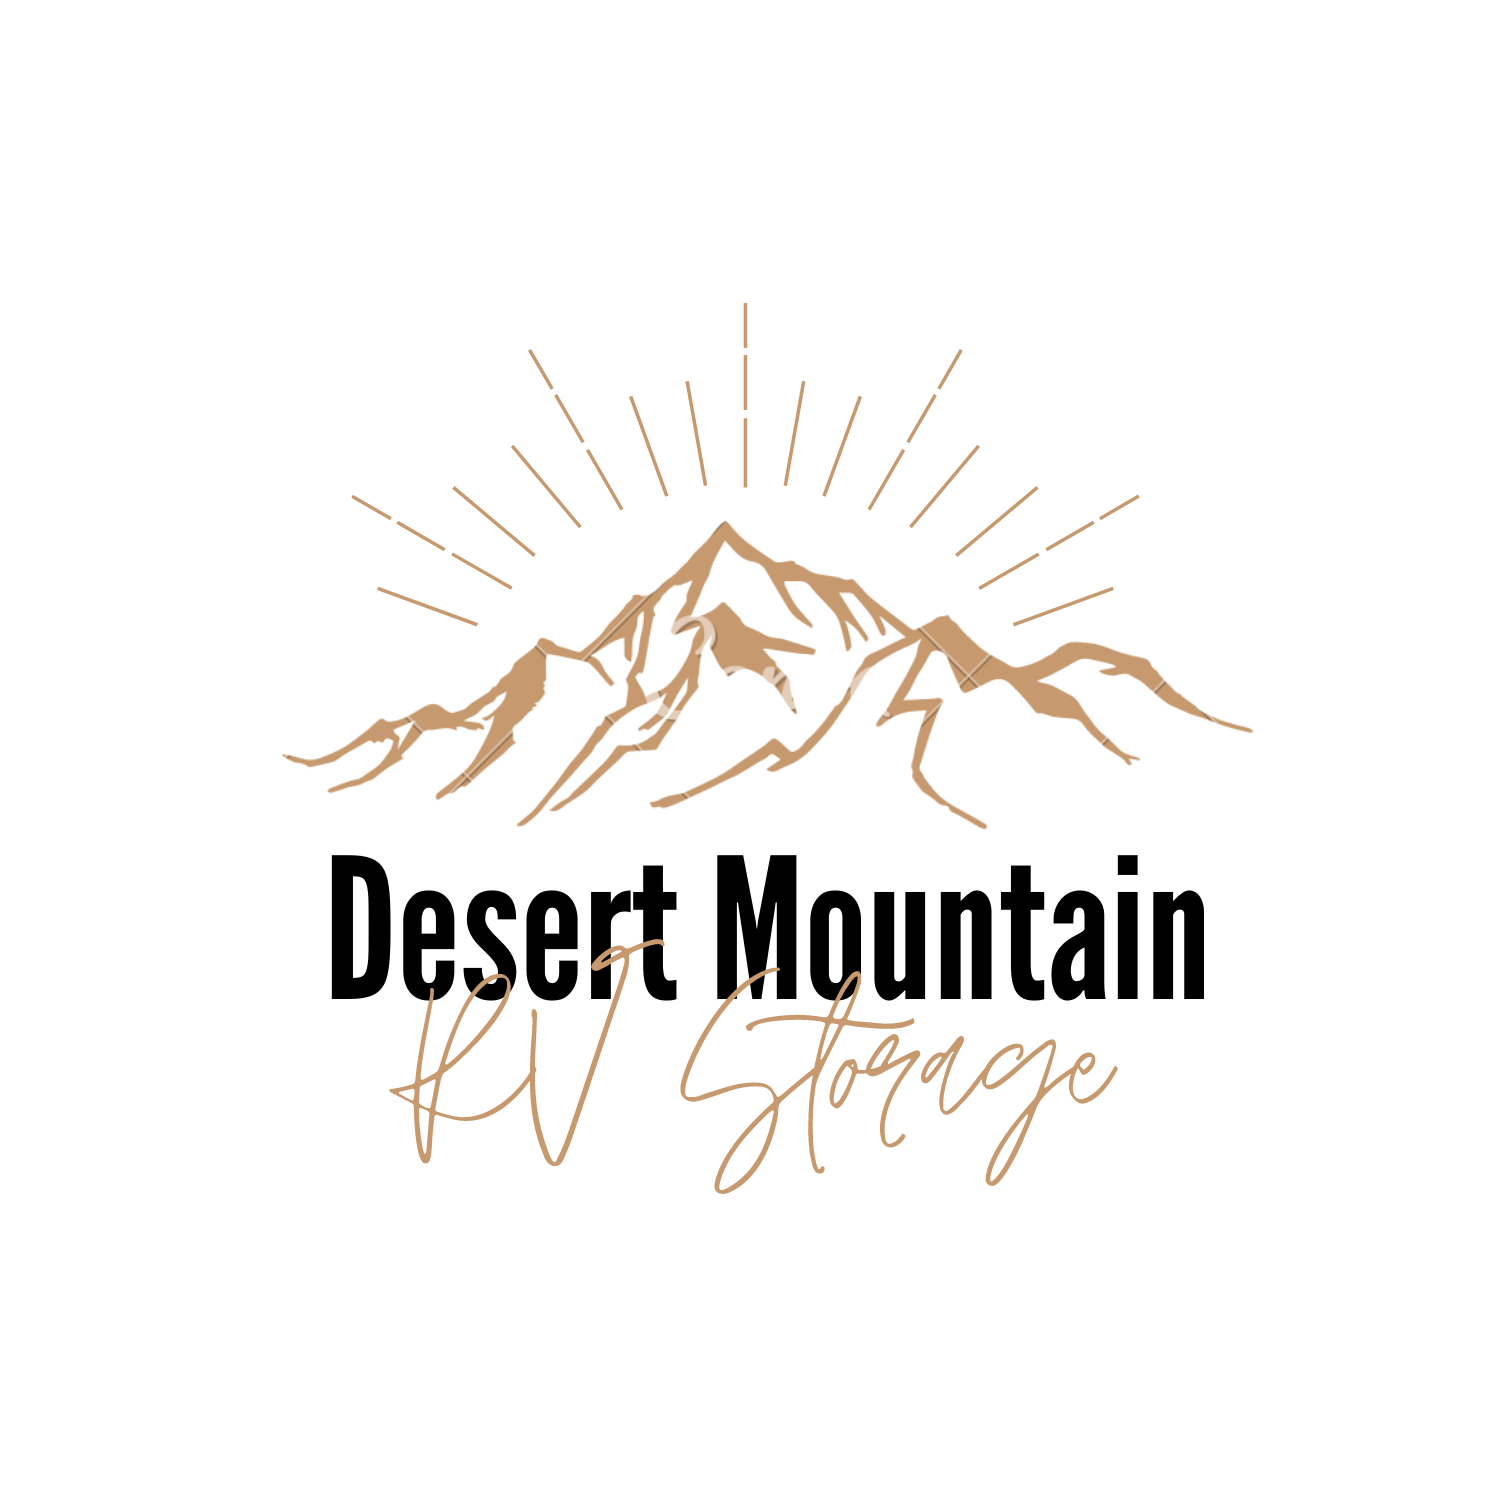 Desert Mountain Rv Storage